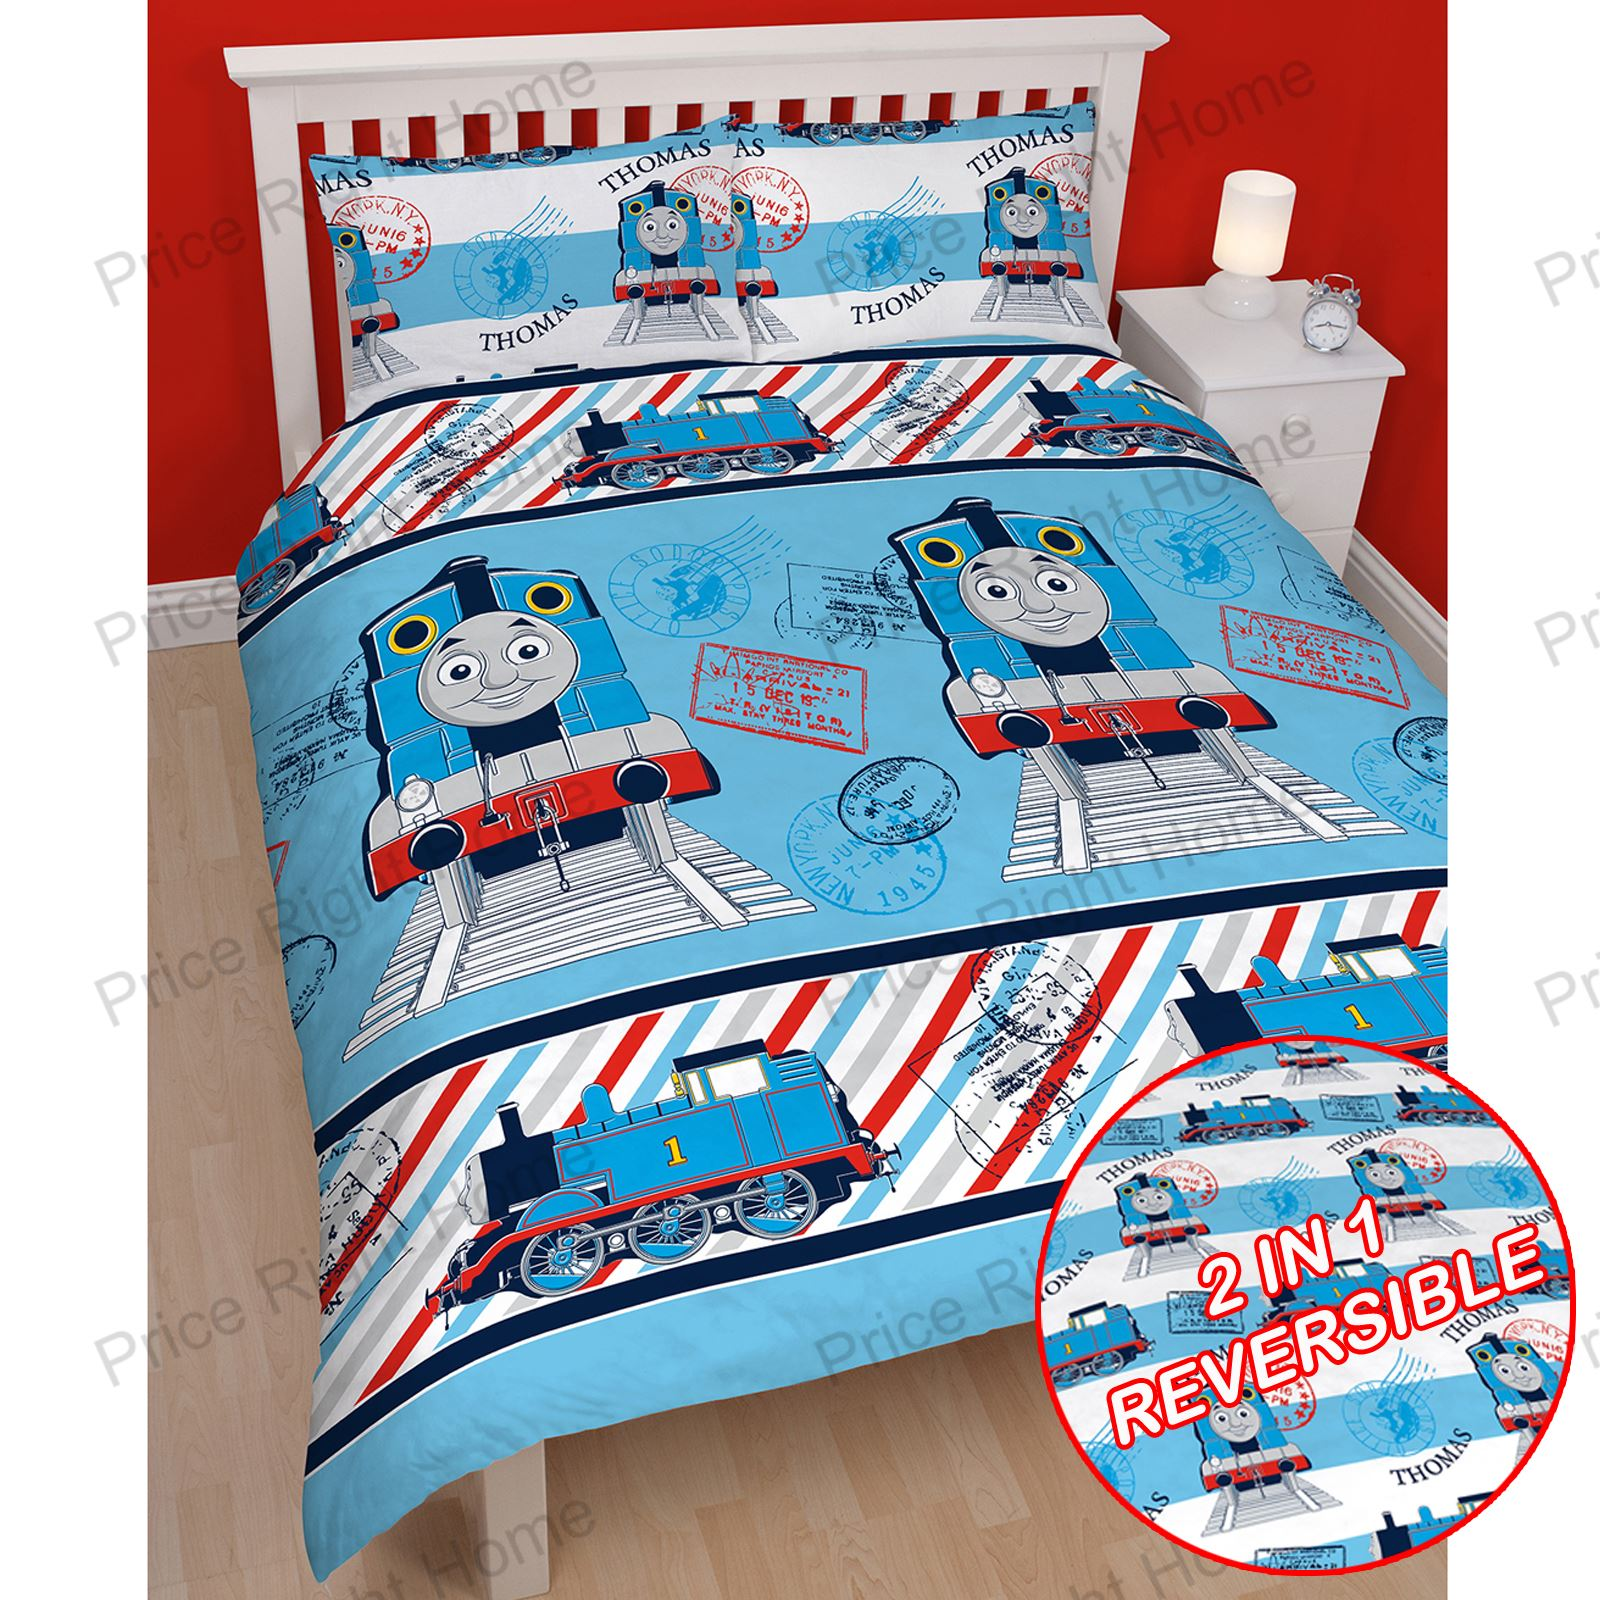 ideas lightyear bedding on cozy diverting dk decorative buzz mes toddler walmart bed dinosaur laminate decor beds tufted ing also along girls kids fascinating at room princess disney with wood quilt